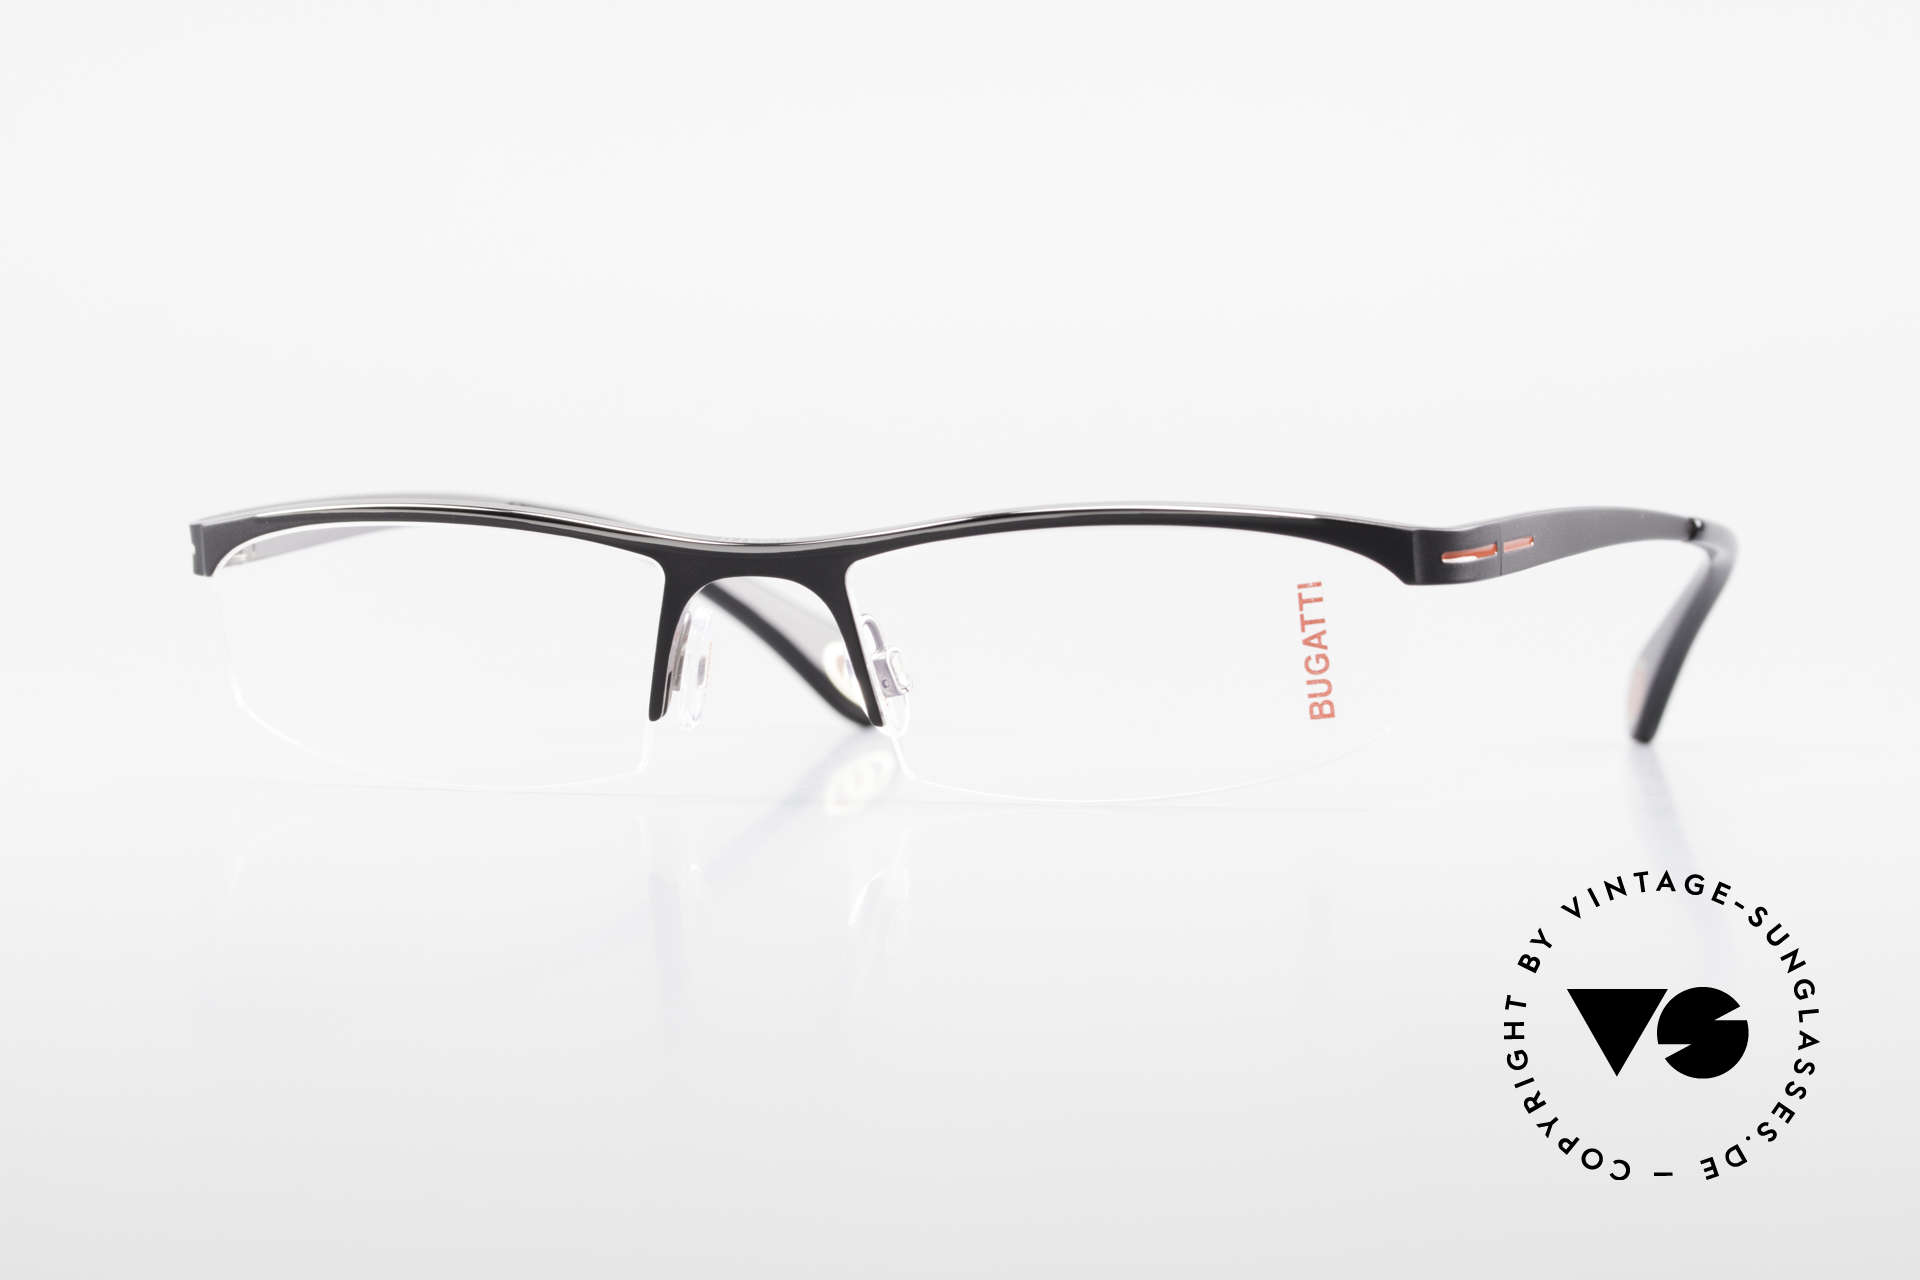 Bugatti 495 Luxury Nylor Frame Gentlemen, Bugatti glasses, model 495, 031, L, size 55/19, Made for Men